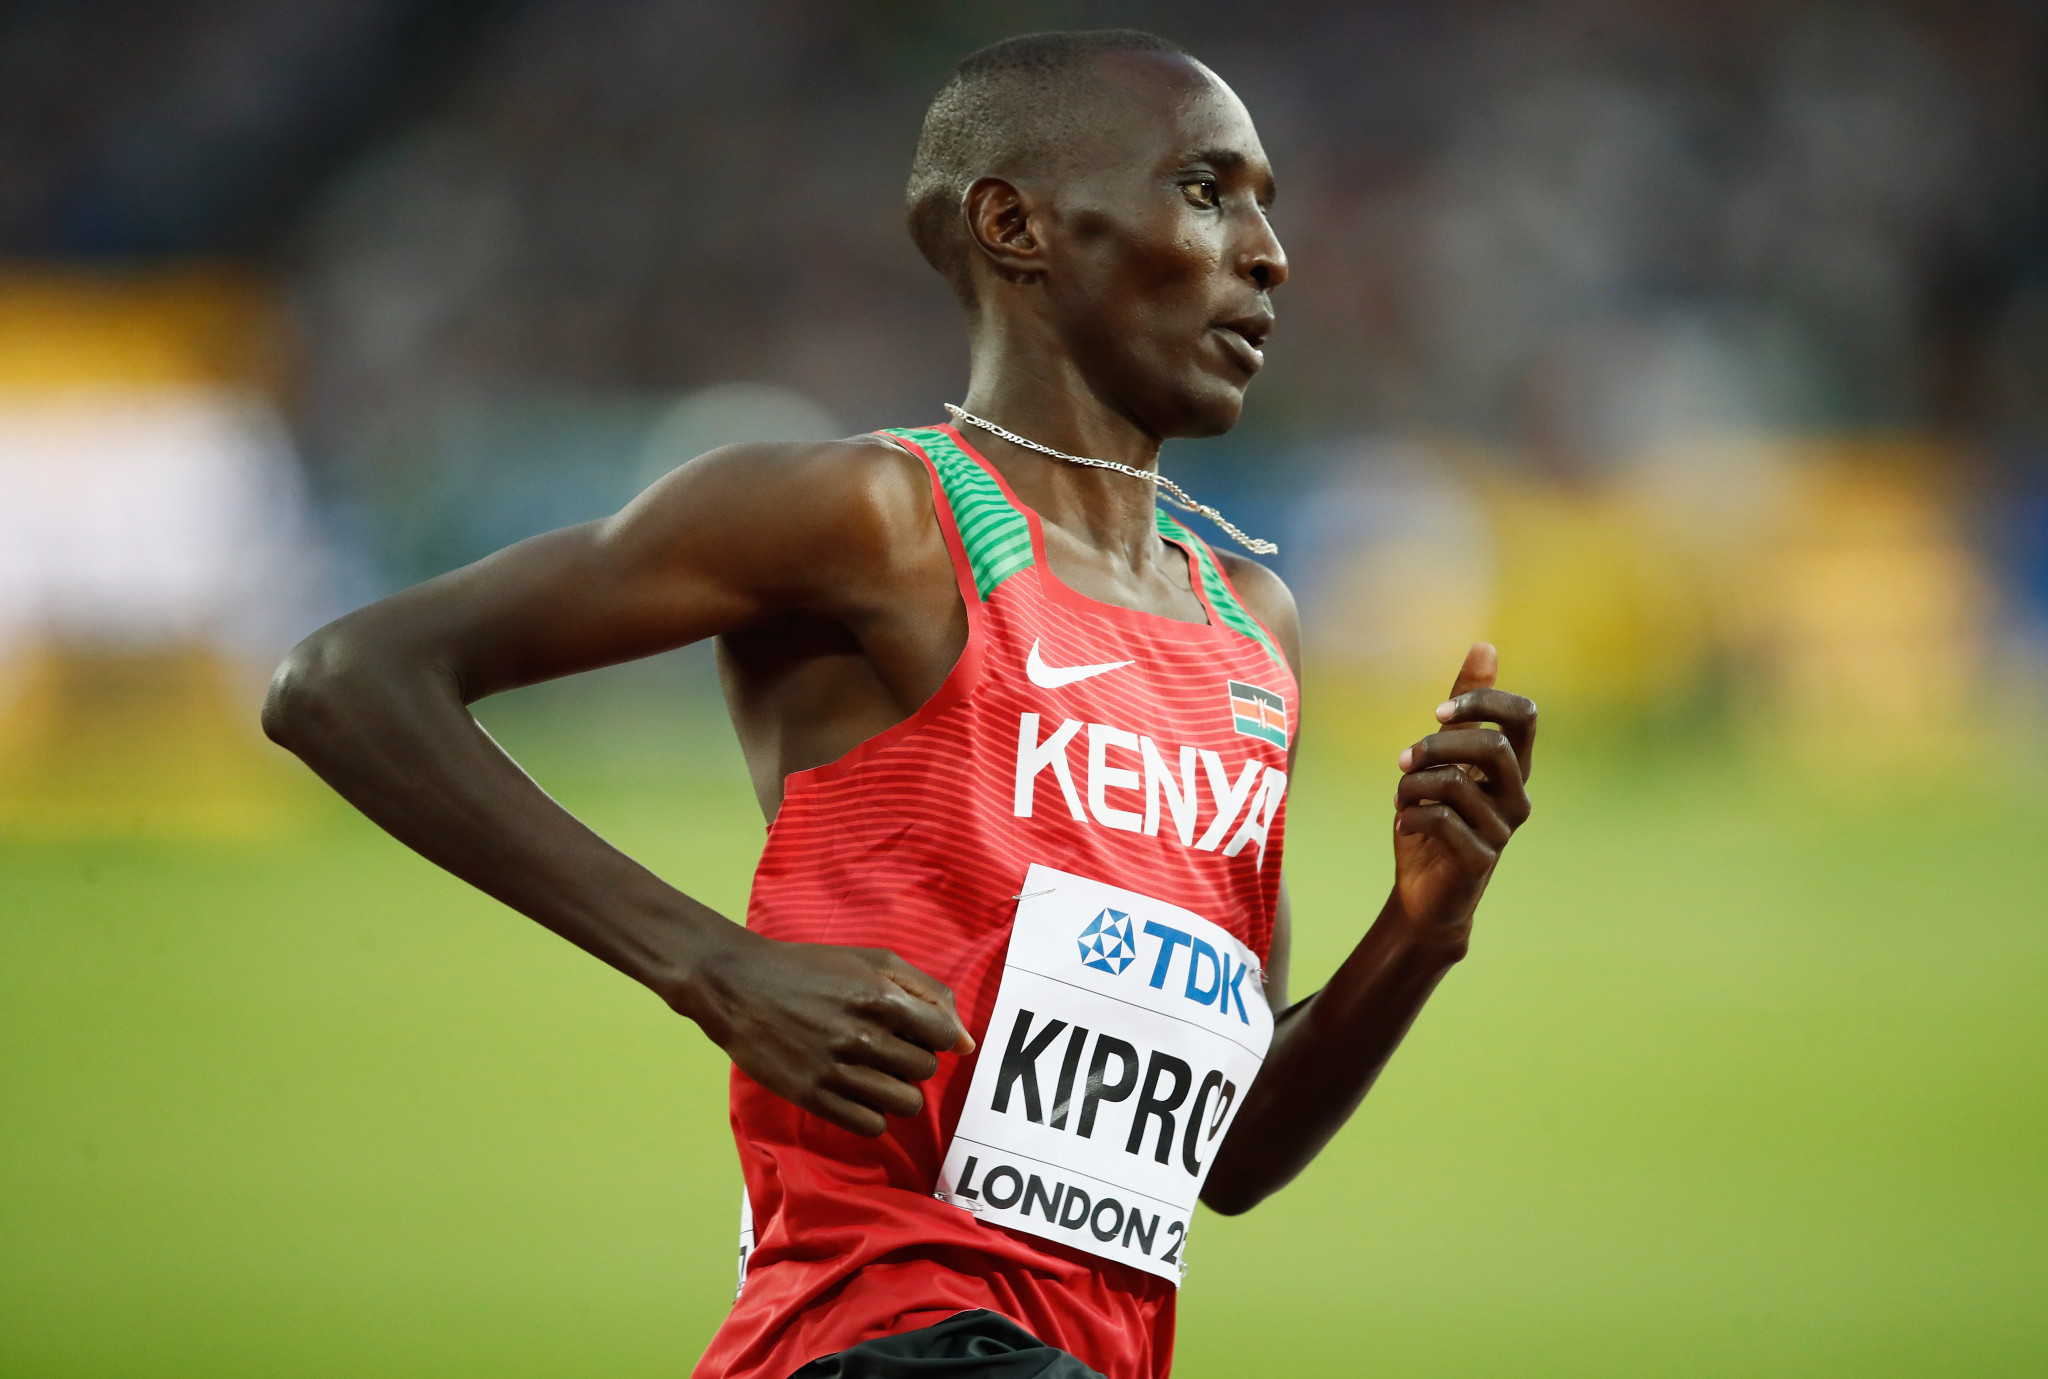 AIU confirms Kiprop's positive test, rejects allegations